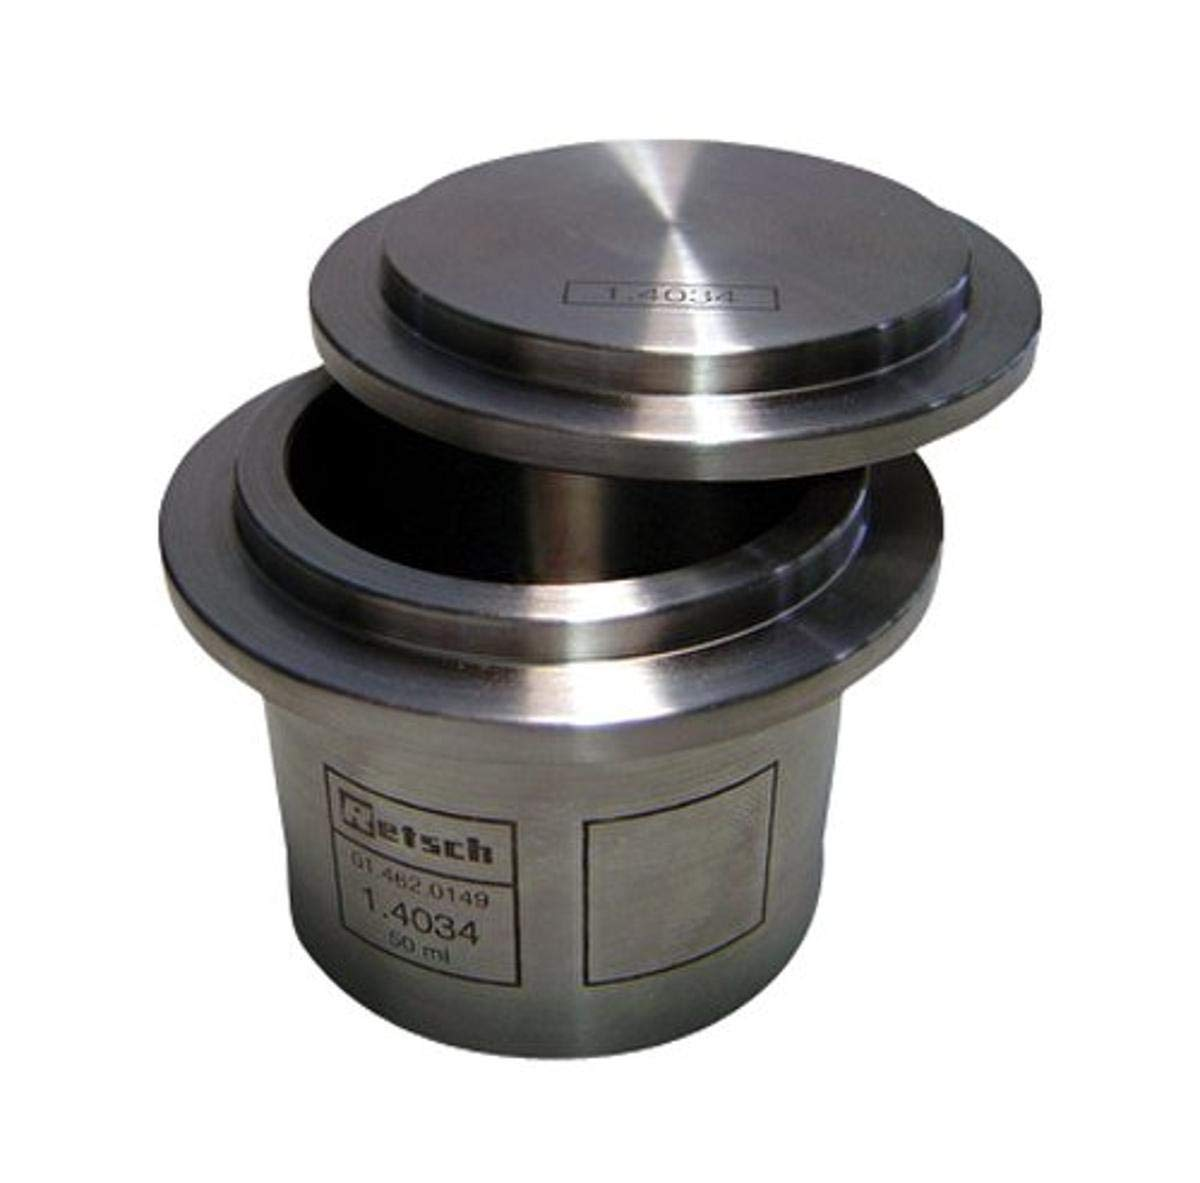 Spasm price Retsch 01.462.0149 Stainless Limited time trial price Steel Grinding 100 Jar for PM